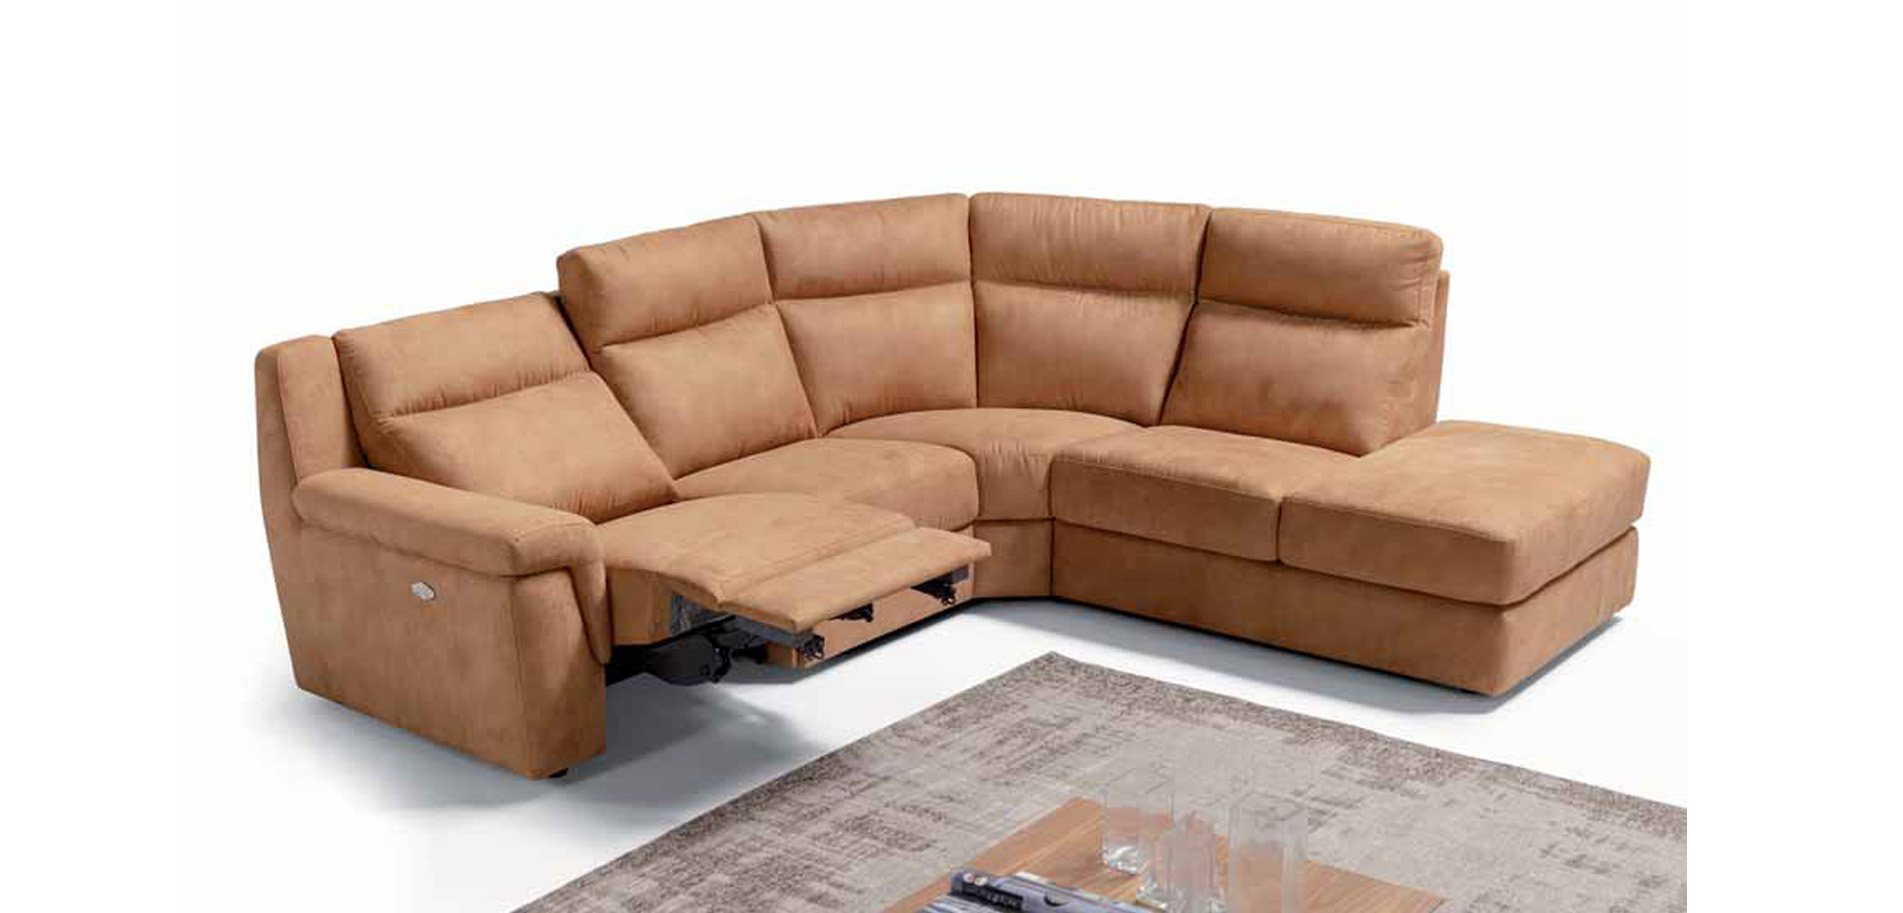 Max Divani Leather Sofa Max Divani Leather Recliner Sofa Review Home Co